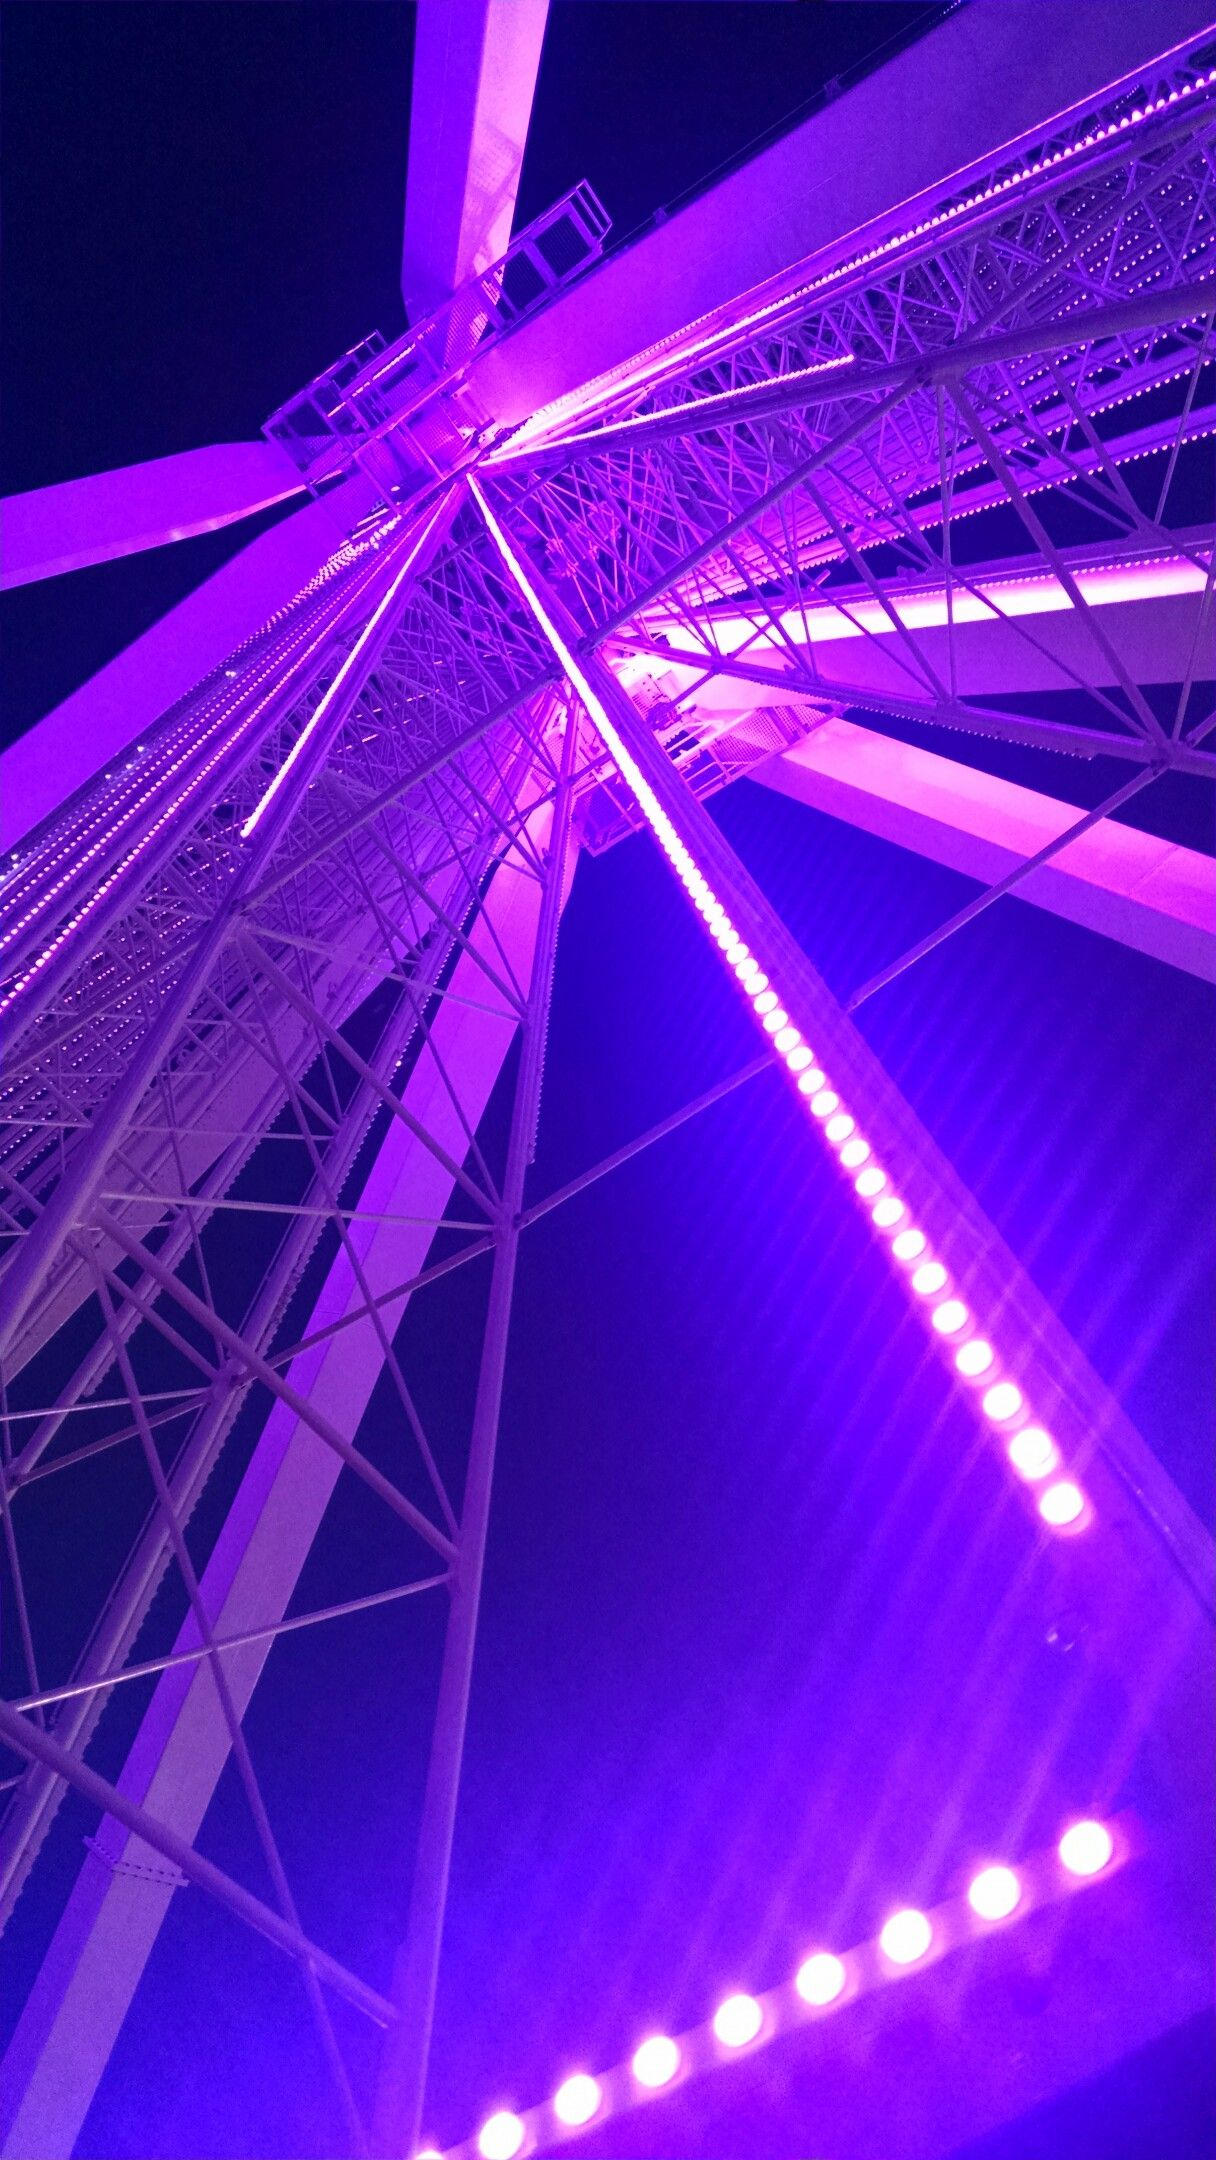 Ferris wheel at night (With images) Purple aesthetic